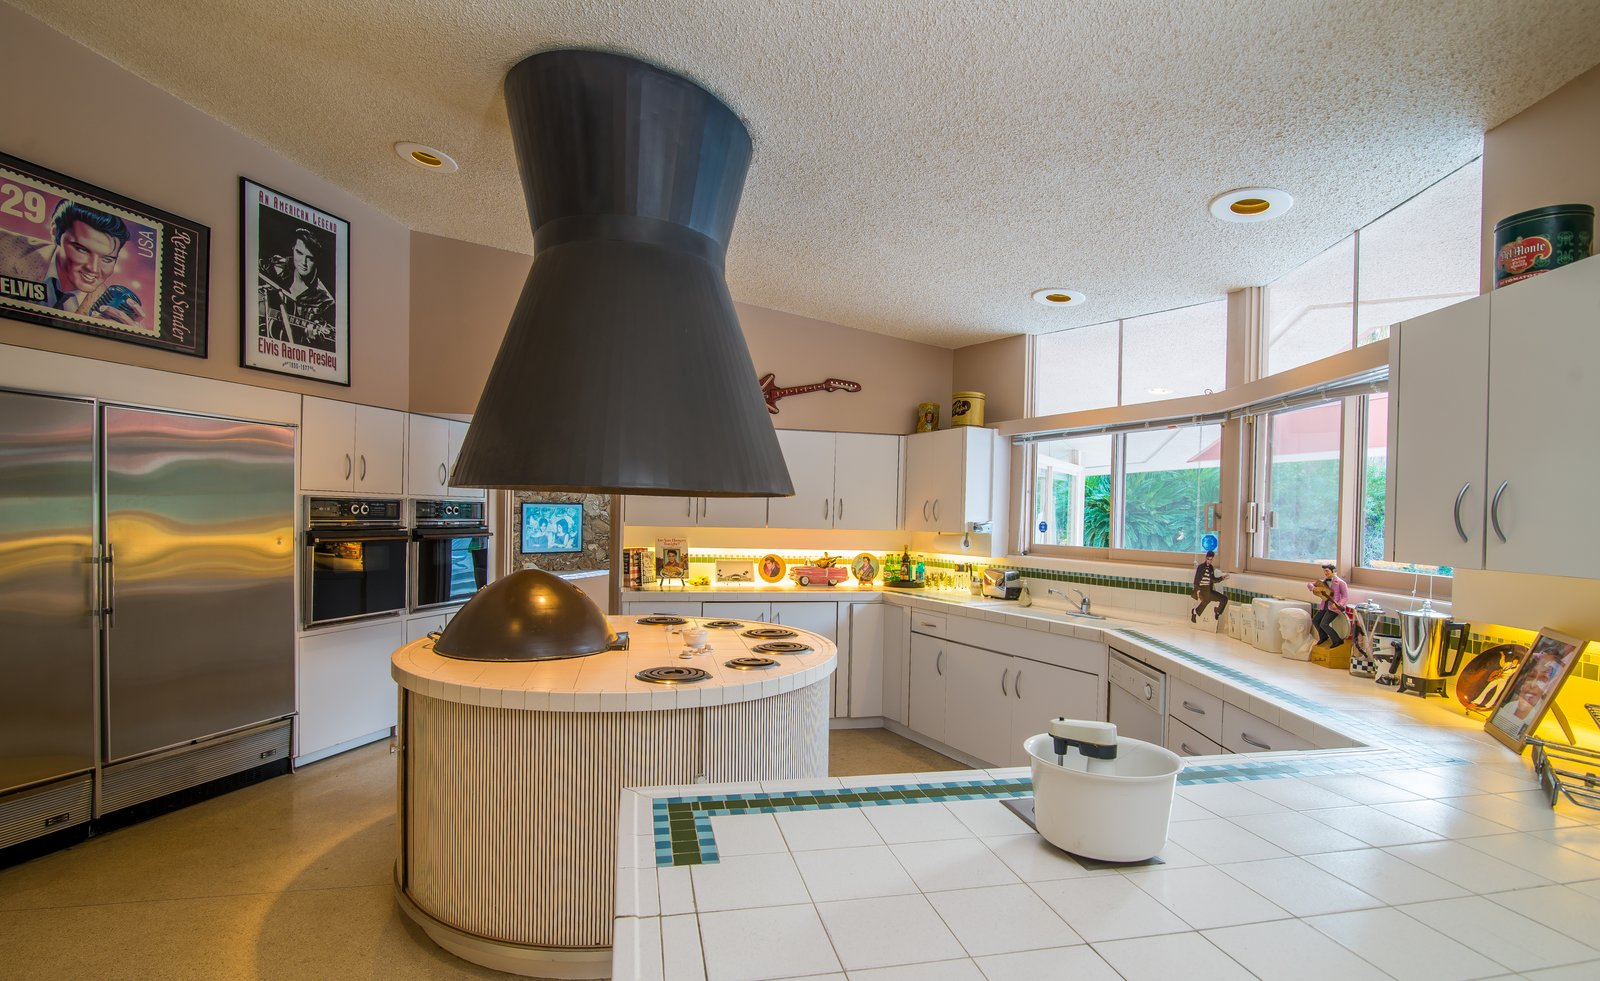 Kitchen, Refrigerator, Range Hood, Tile Counter, and White Cabinet  Photo 5 of 8 in Elvis Presley's Palm Springs Honeymoon Retreat Hits the Market